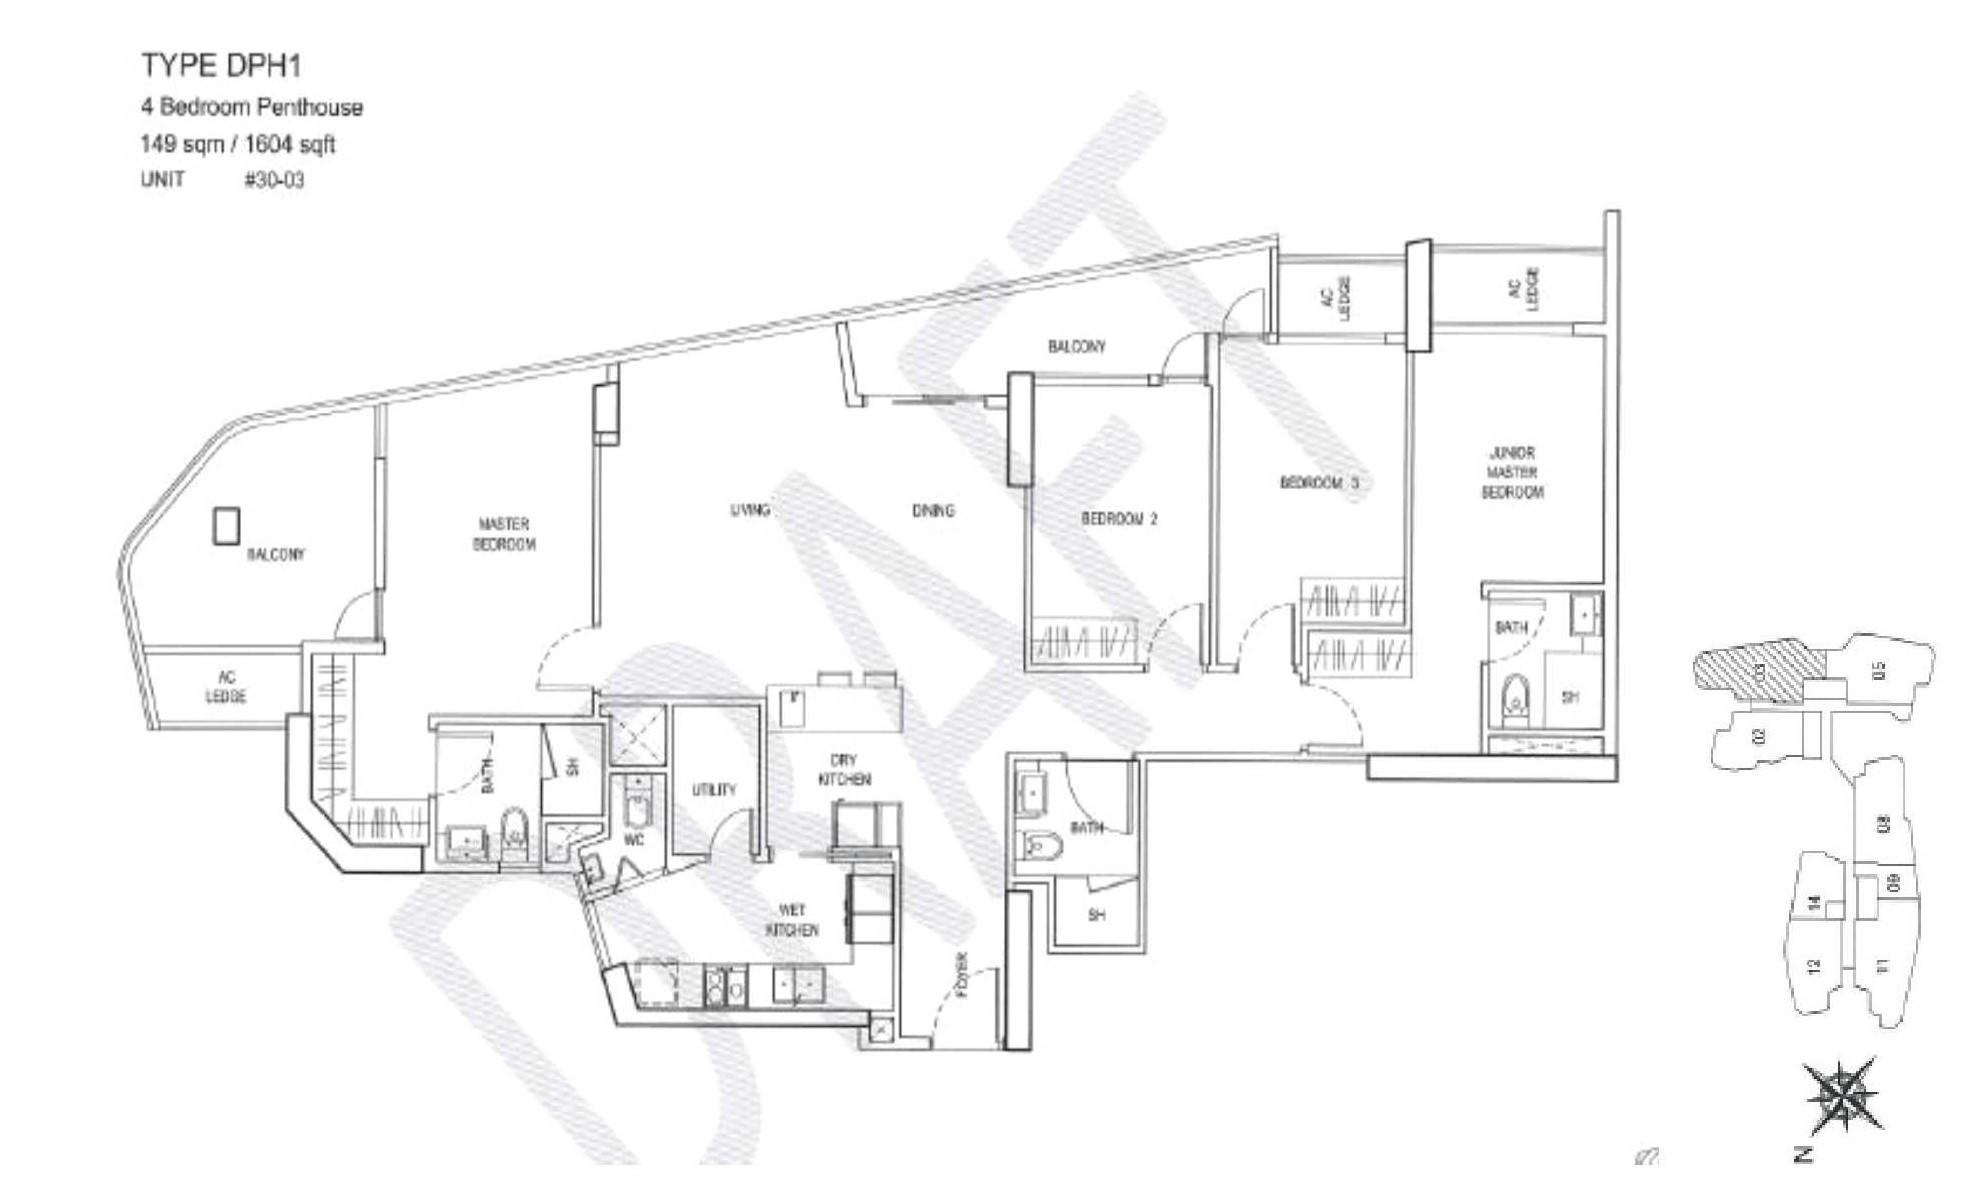 City Gate Floor Plan - DPH1